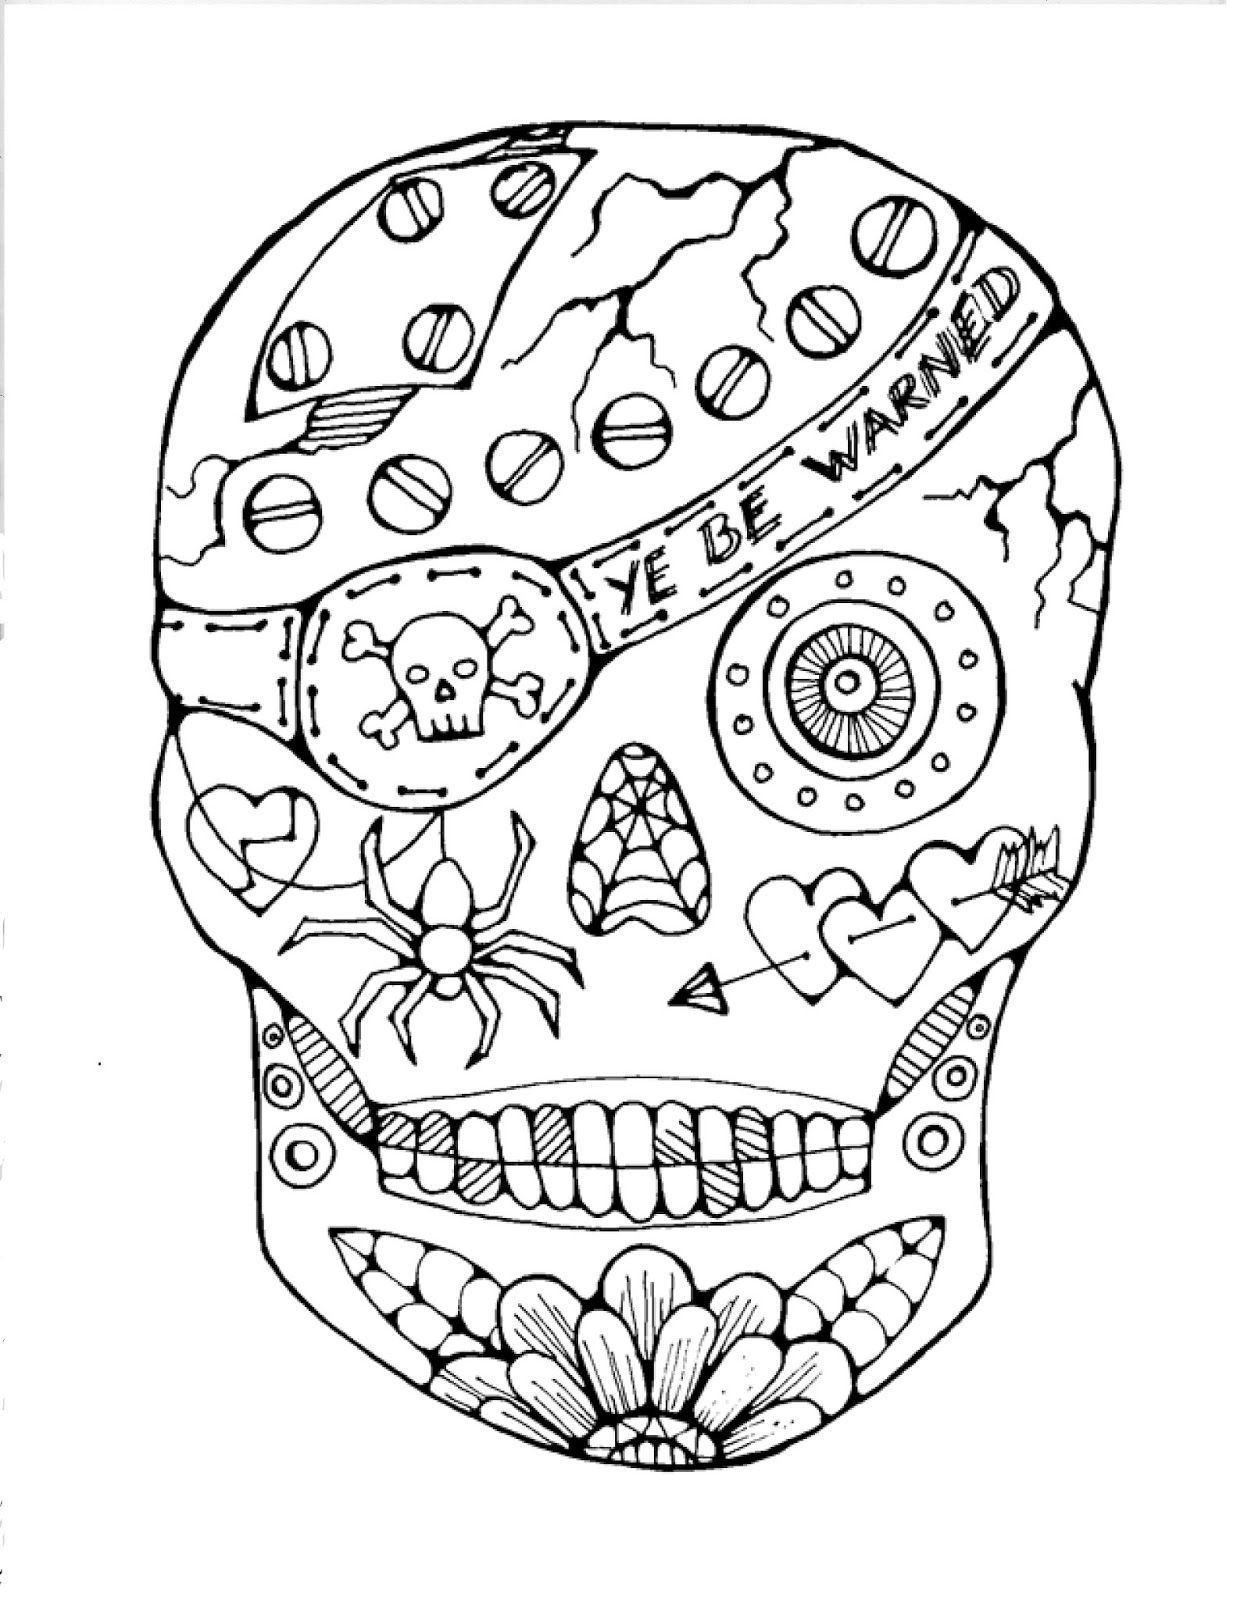 Day Of The Dead Coloring Pages Awesome Sugar Skull Coloring Page Pirate Coloring Pages Skull Coloring Pages Mandala Coloring Pages